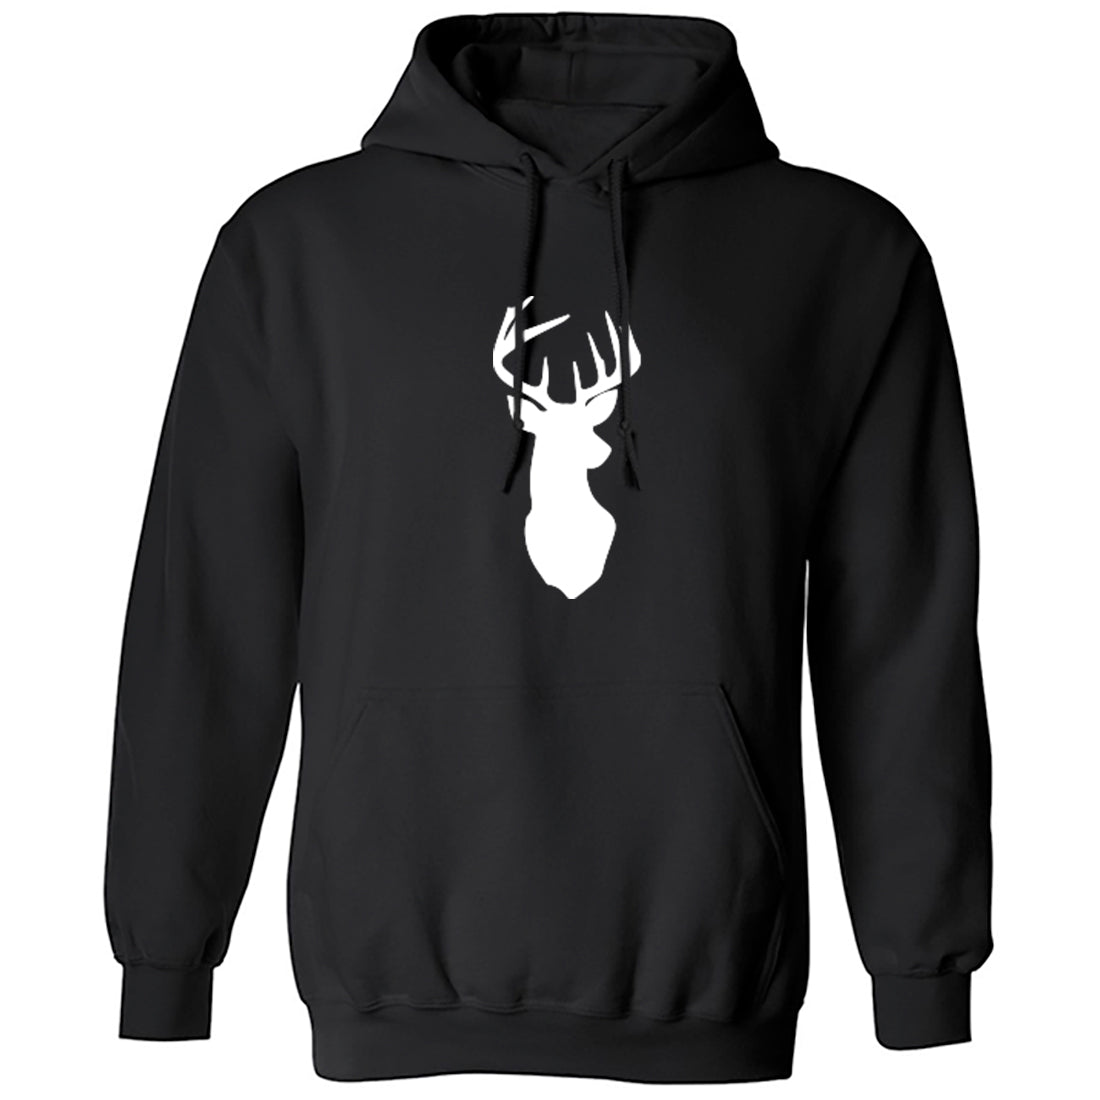 Reindeer Head Unisex Hoodie K1168 - Illustrated Identity Ltd.